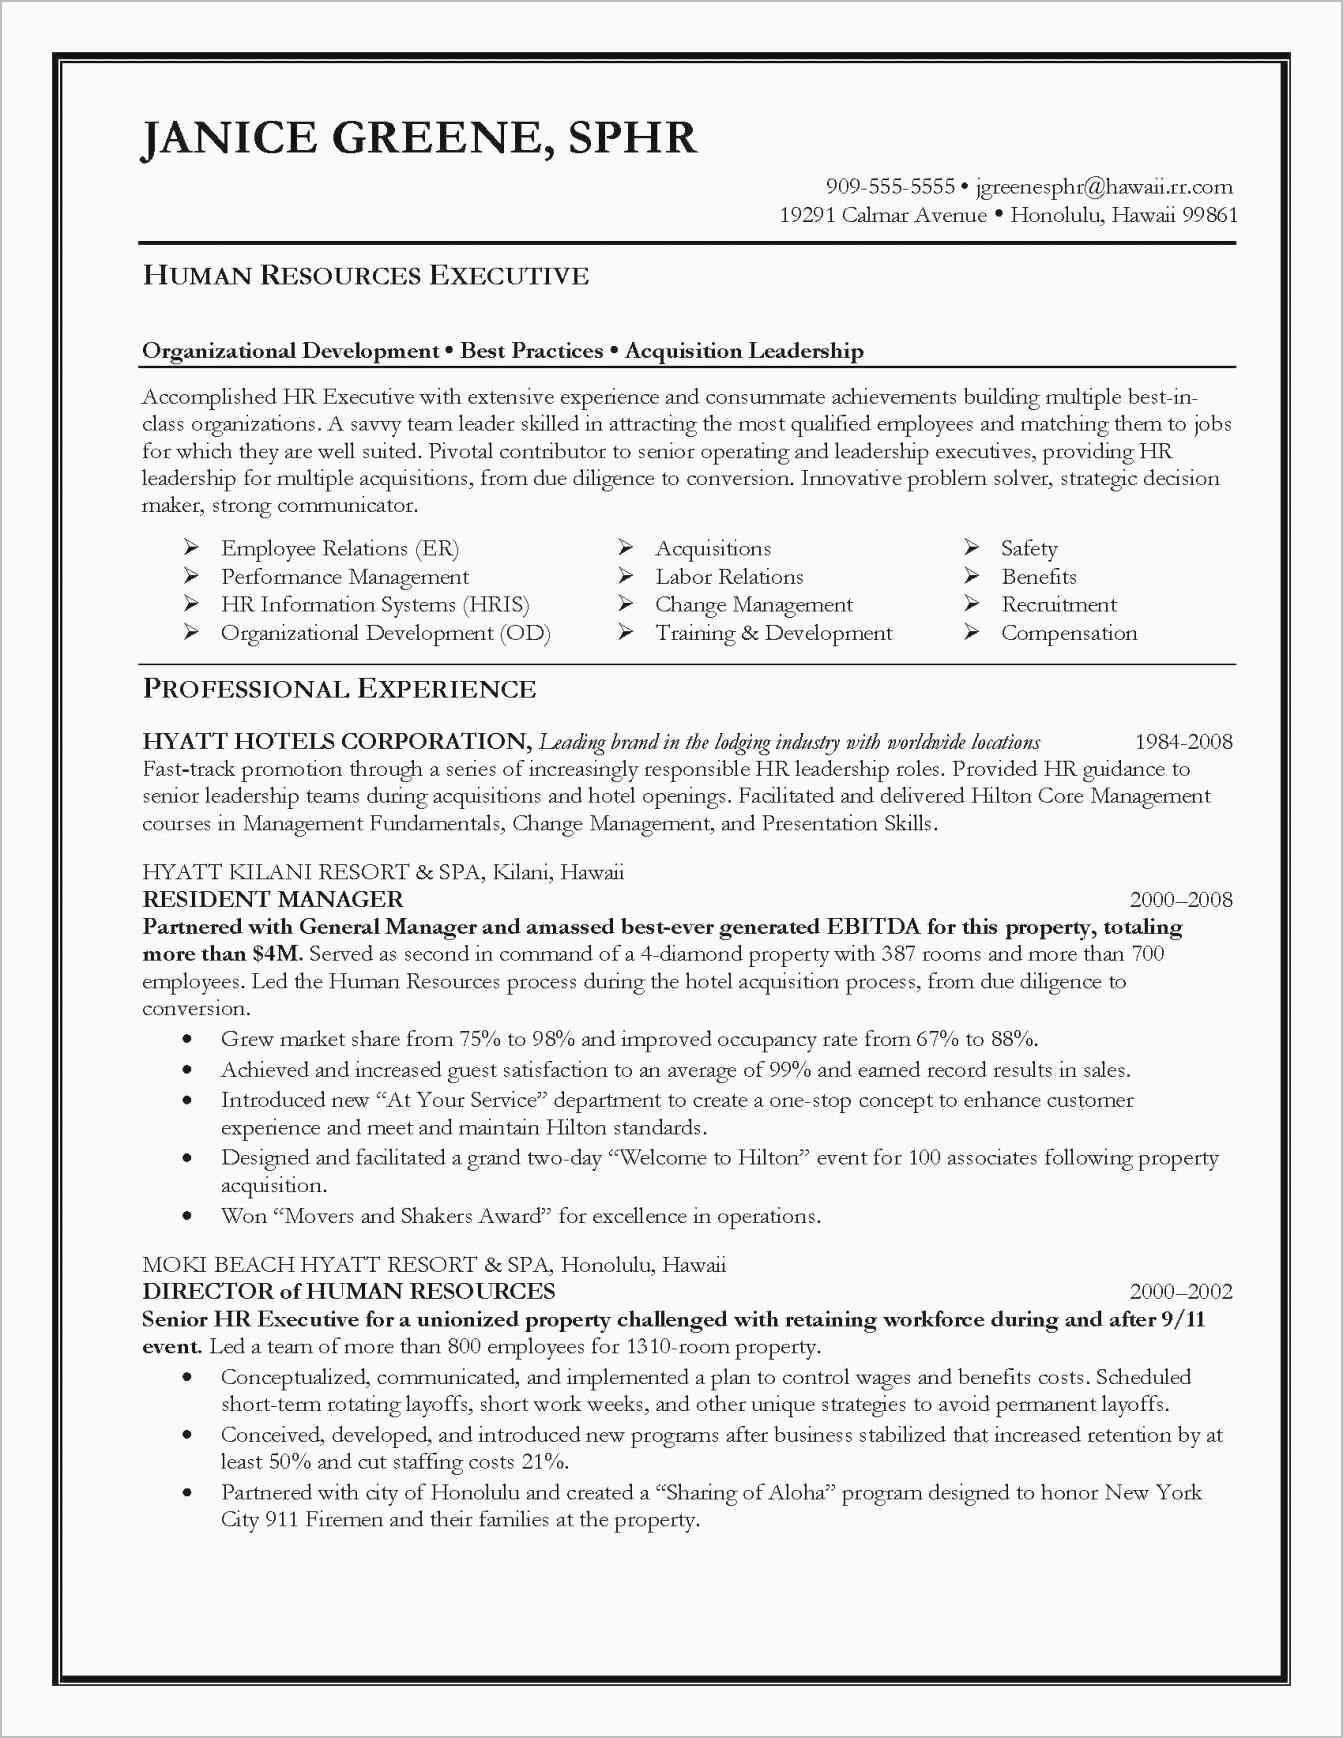 Resume Words To Use Dragon Resume Review Lovely Strong Resume Words Useful 19 New Good